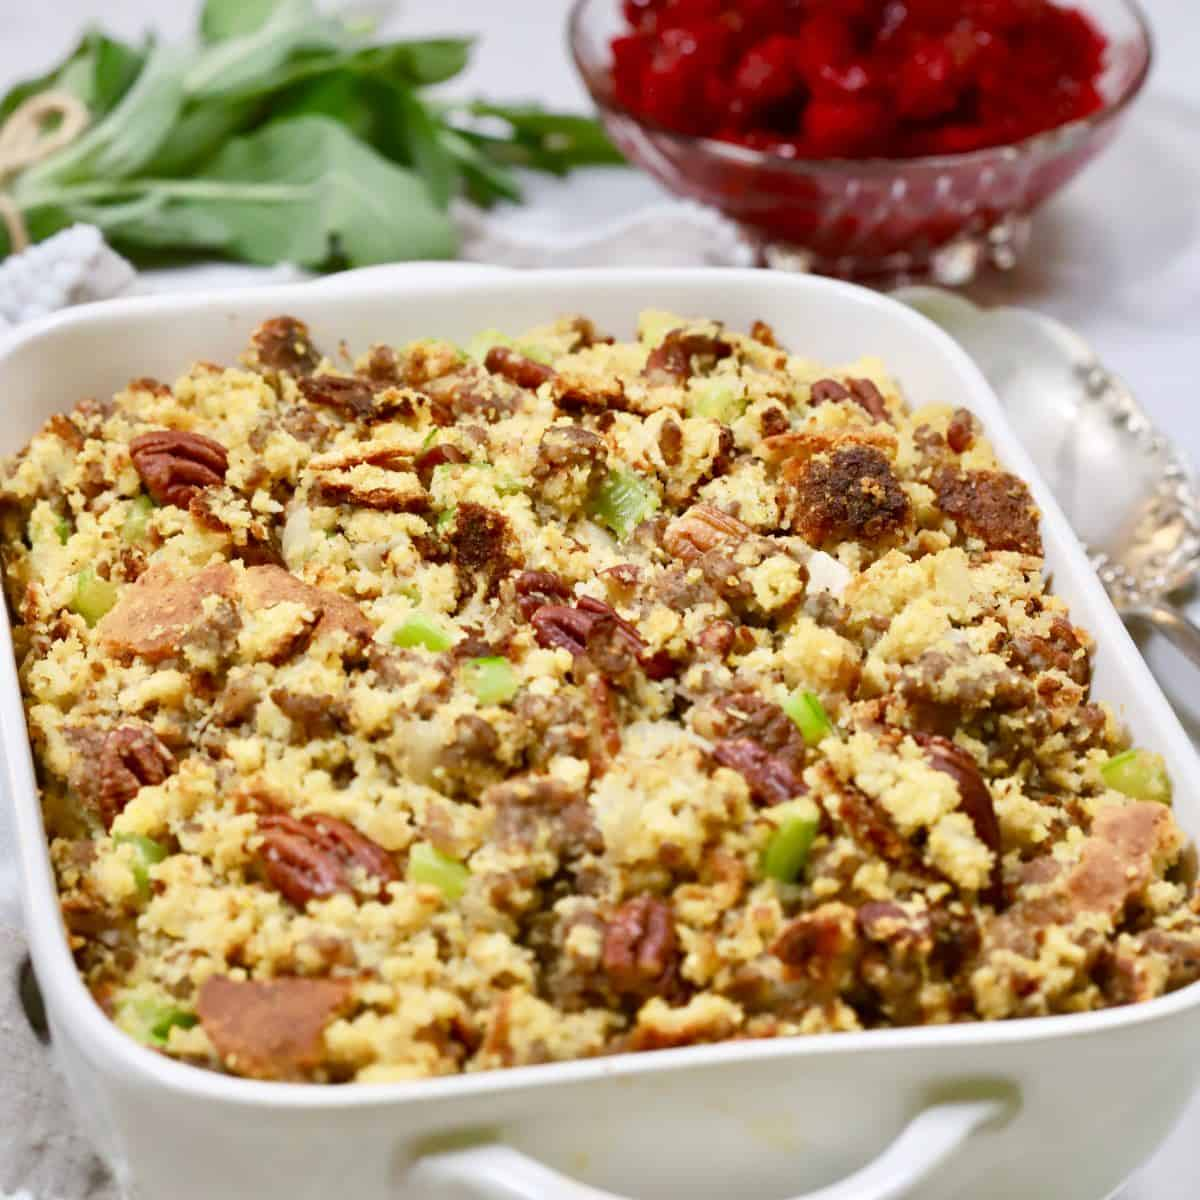 Ready for the big day, Southern Make Ahead Cornbread Dressing with Sausage